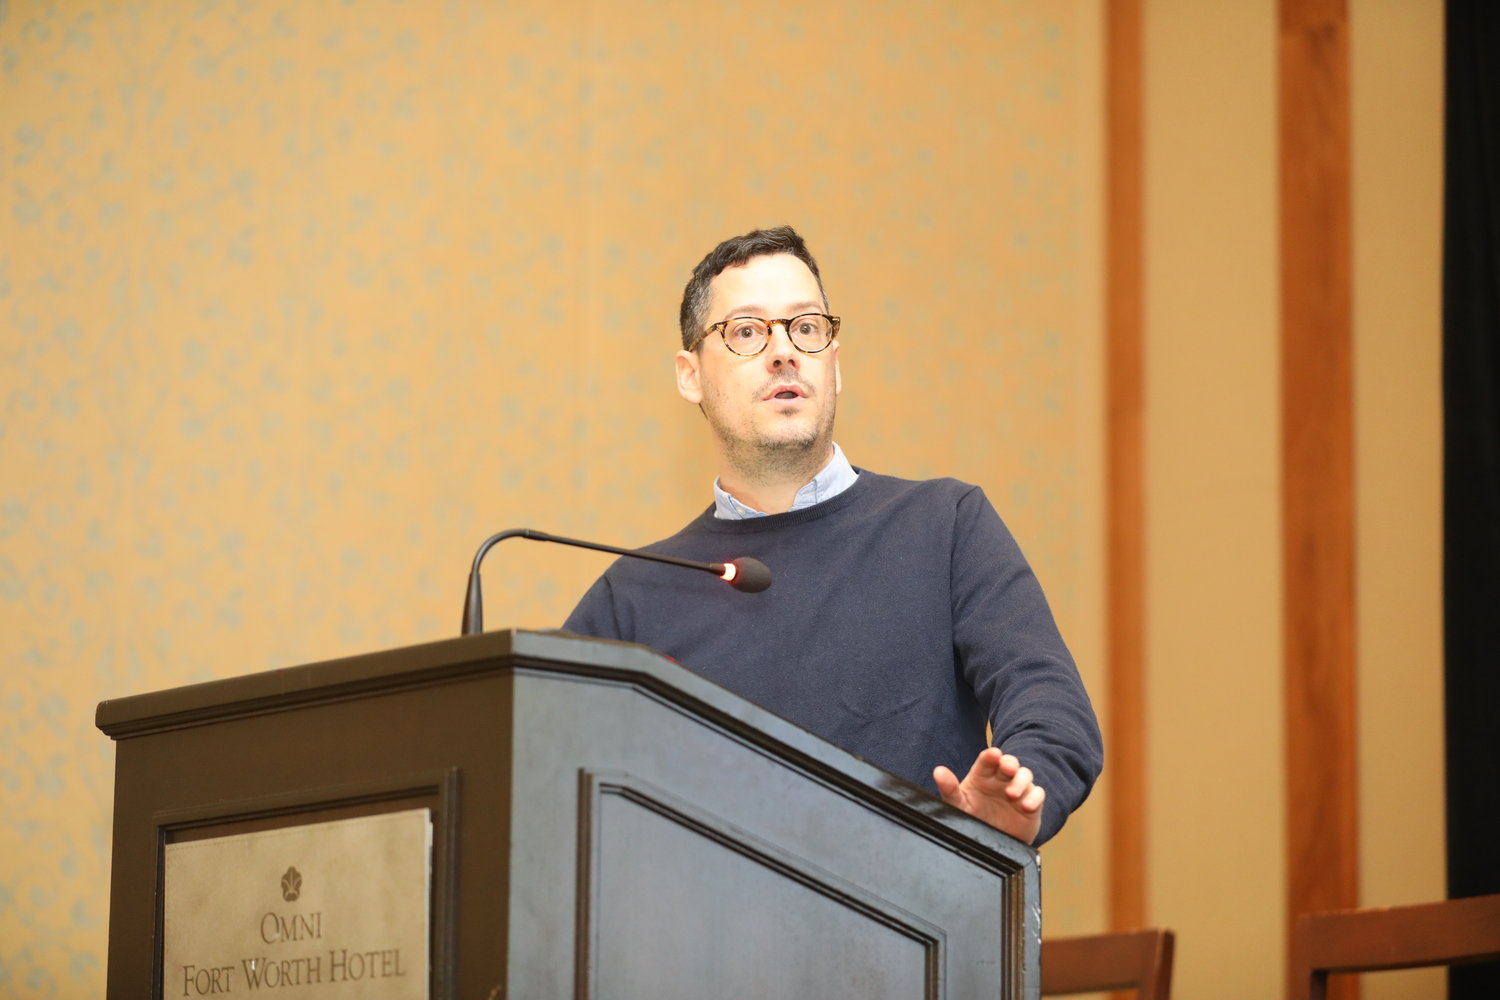 2020 Mega-Conference at the Omni Hotel in Fort Worth, Texas, Feb. 18, 2020. (Photo by Bob Booth)